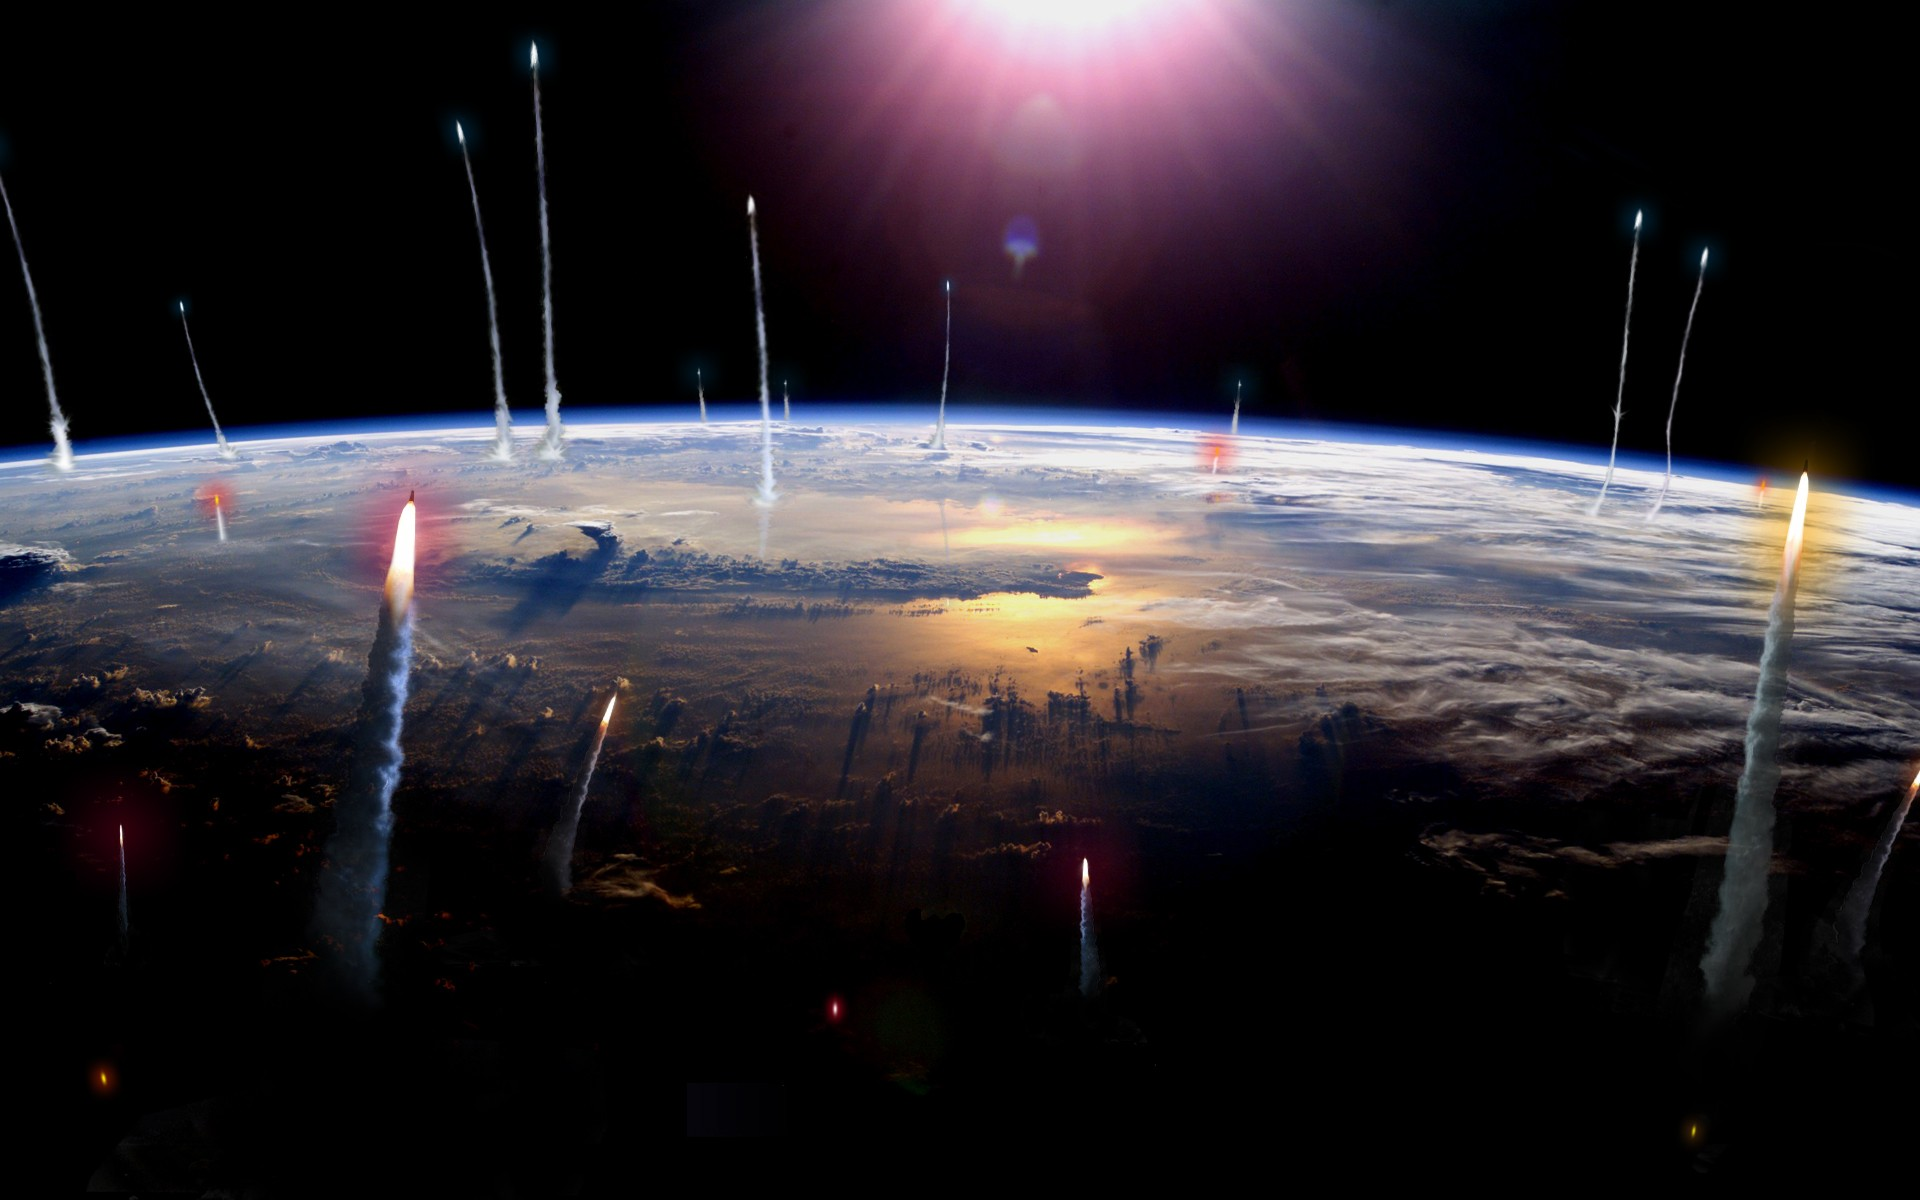 the earth spinning closely to its own extinction